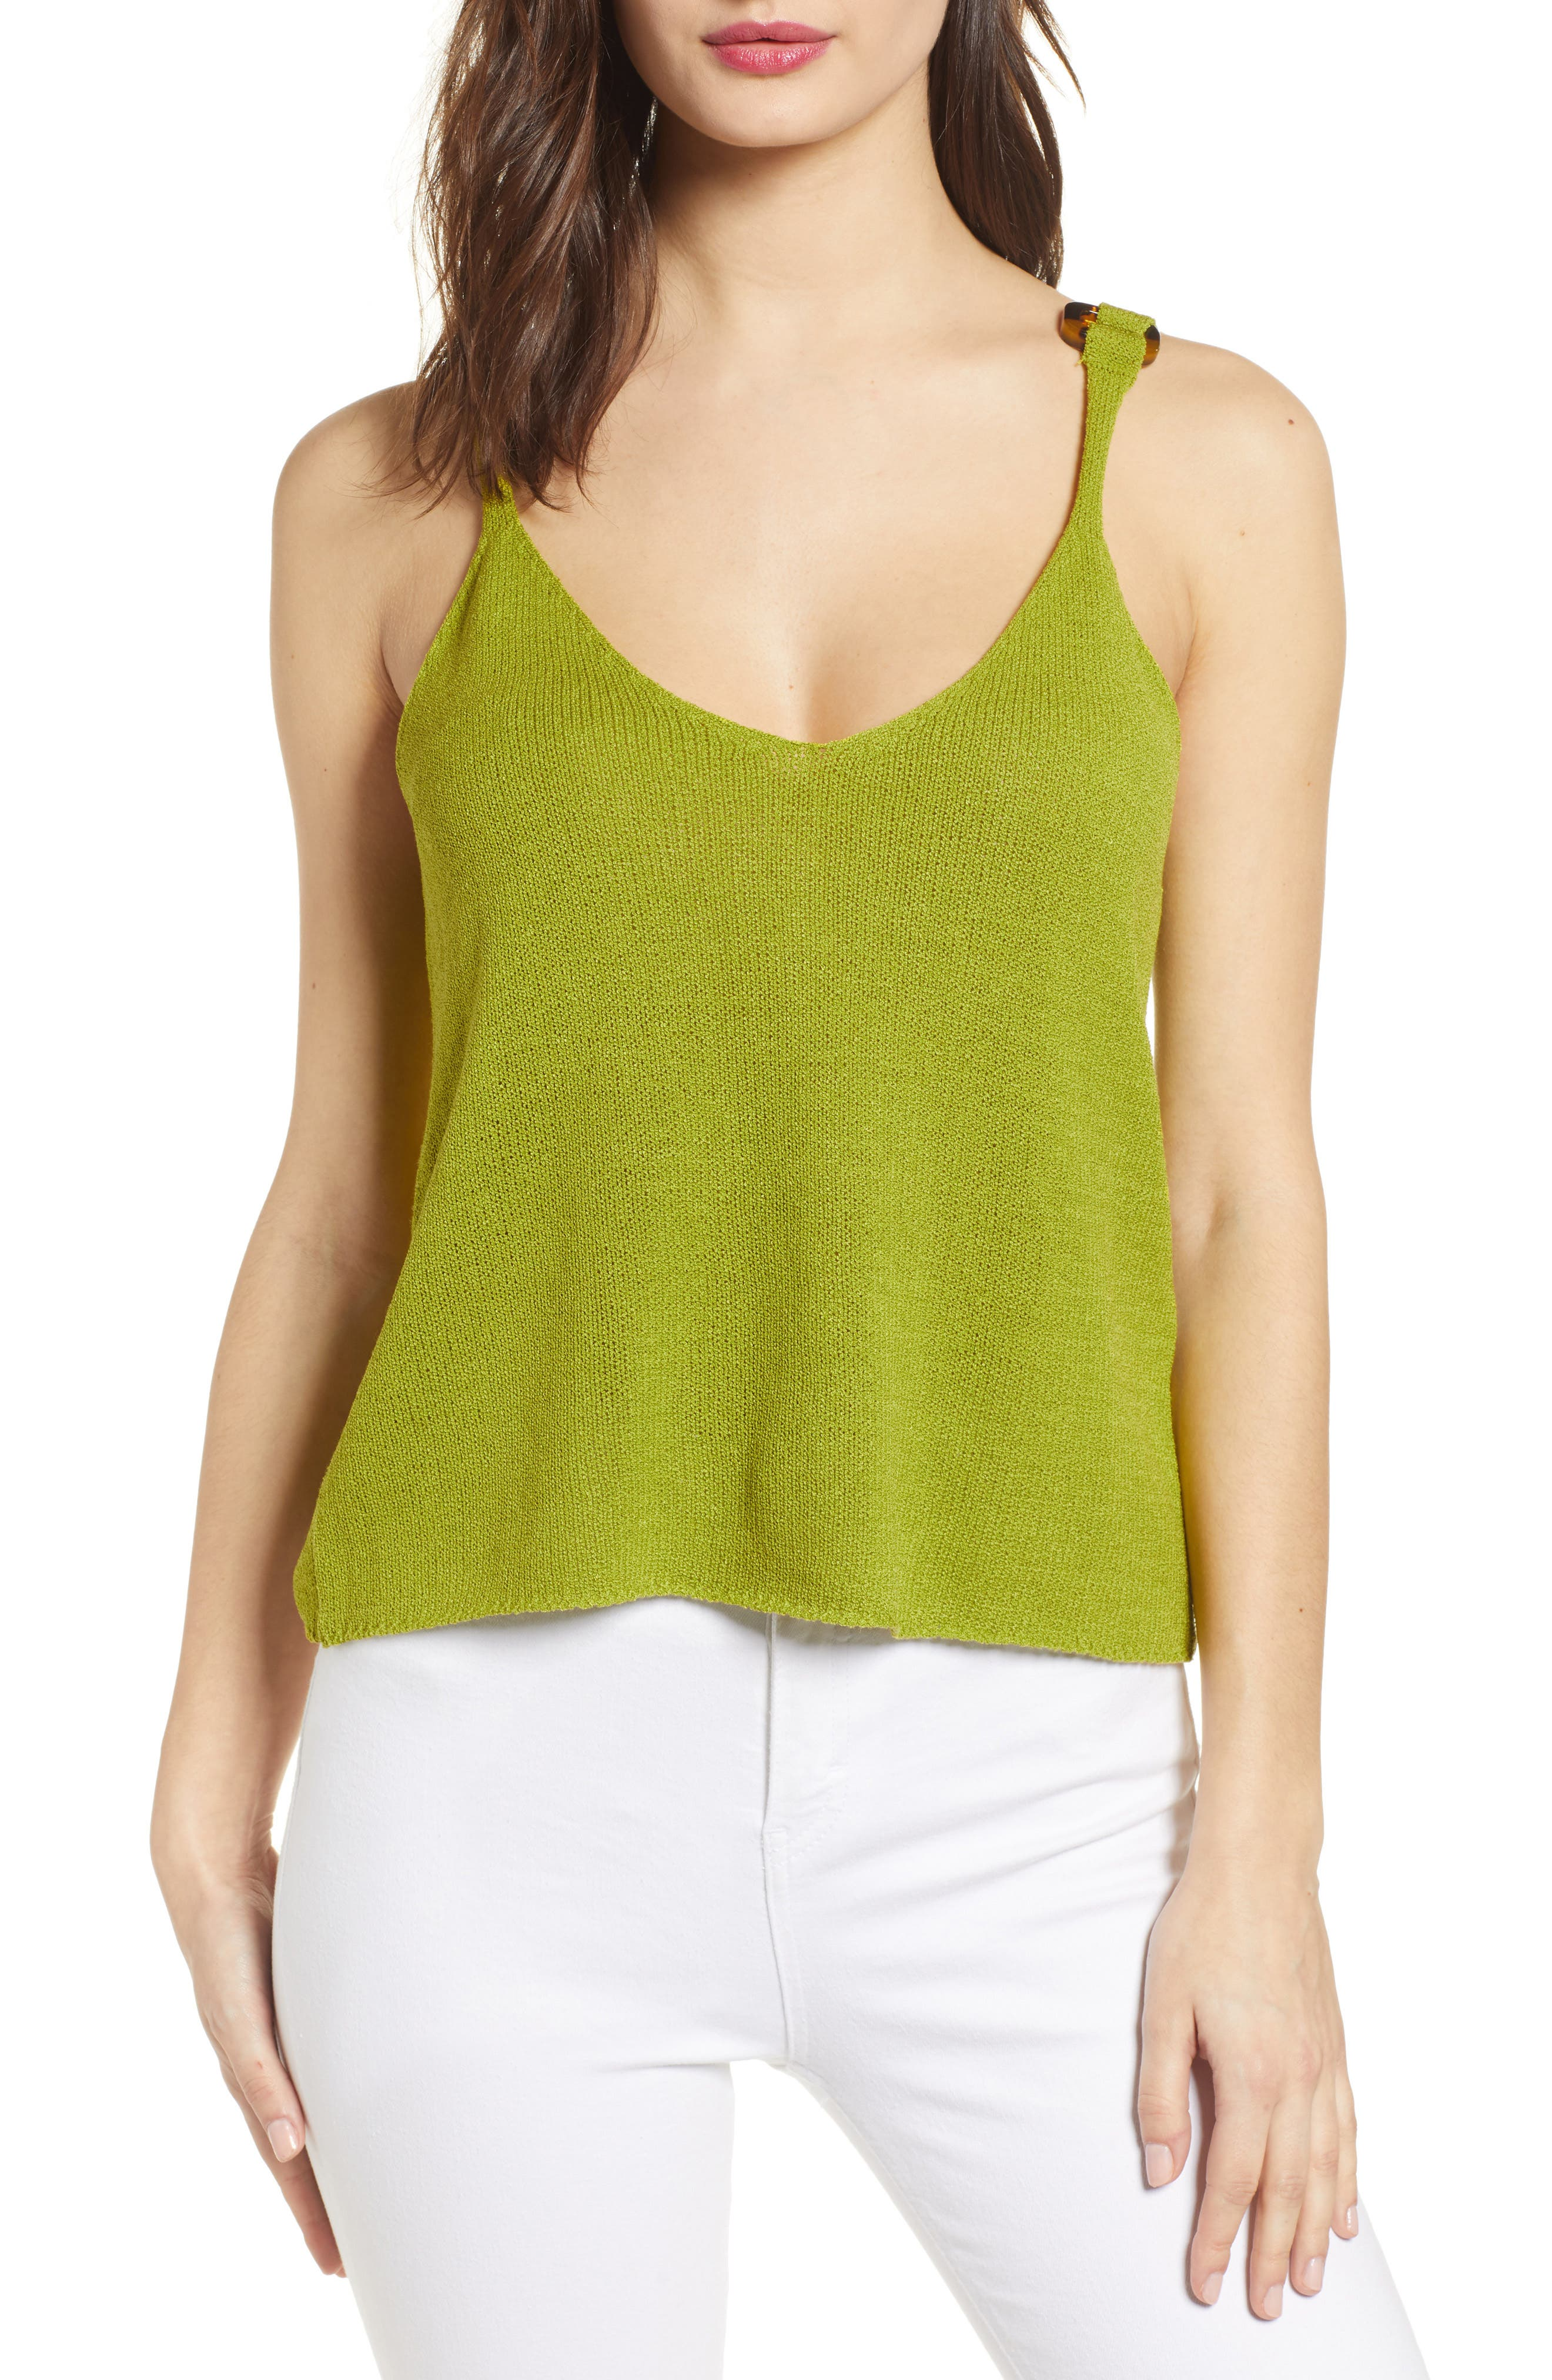 J.o.a. Knit Camisole, Green